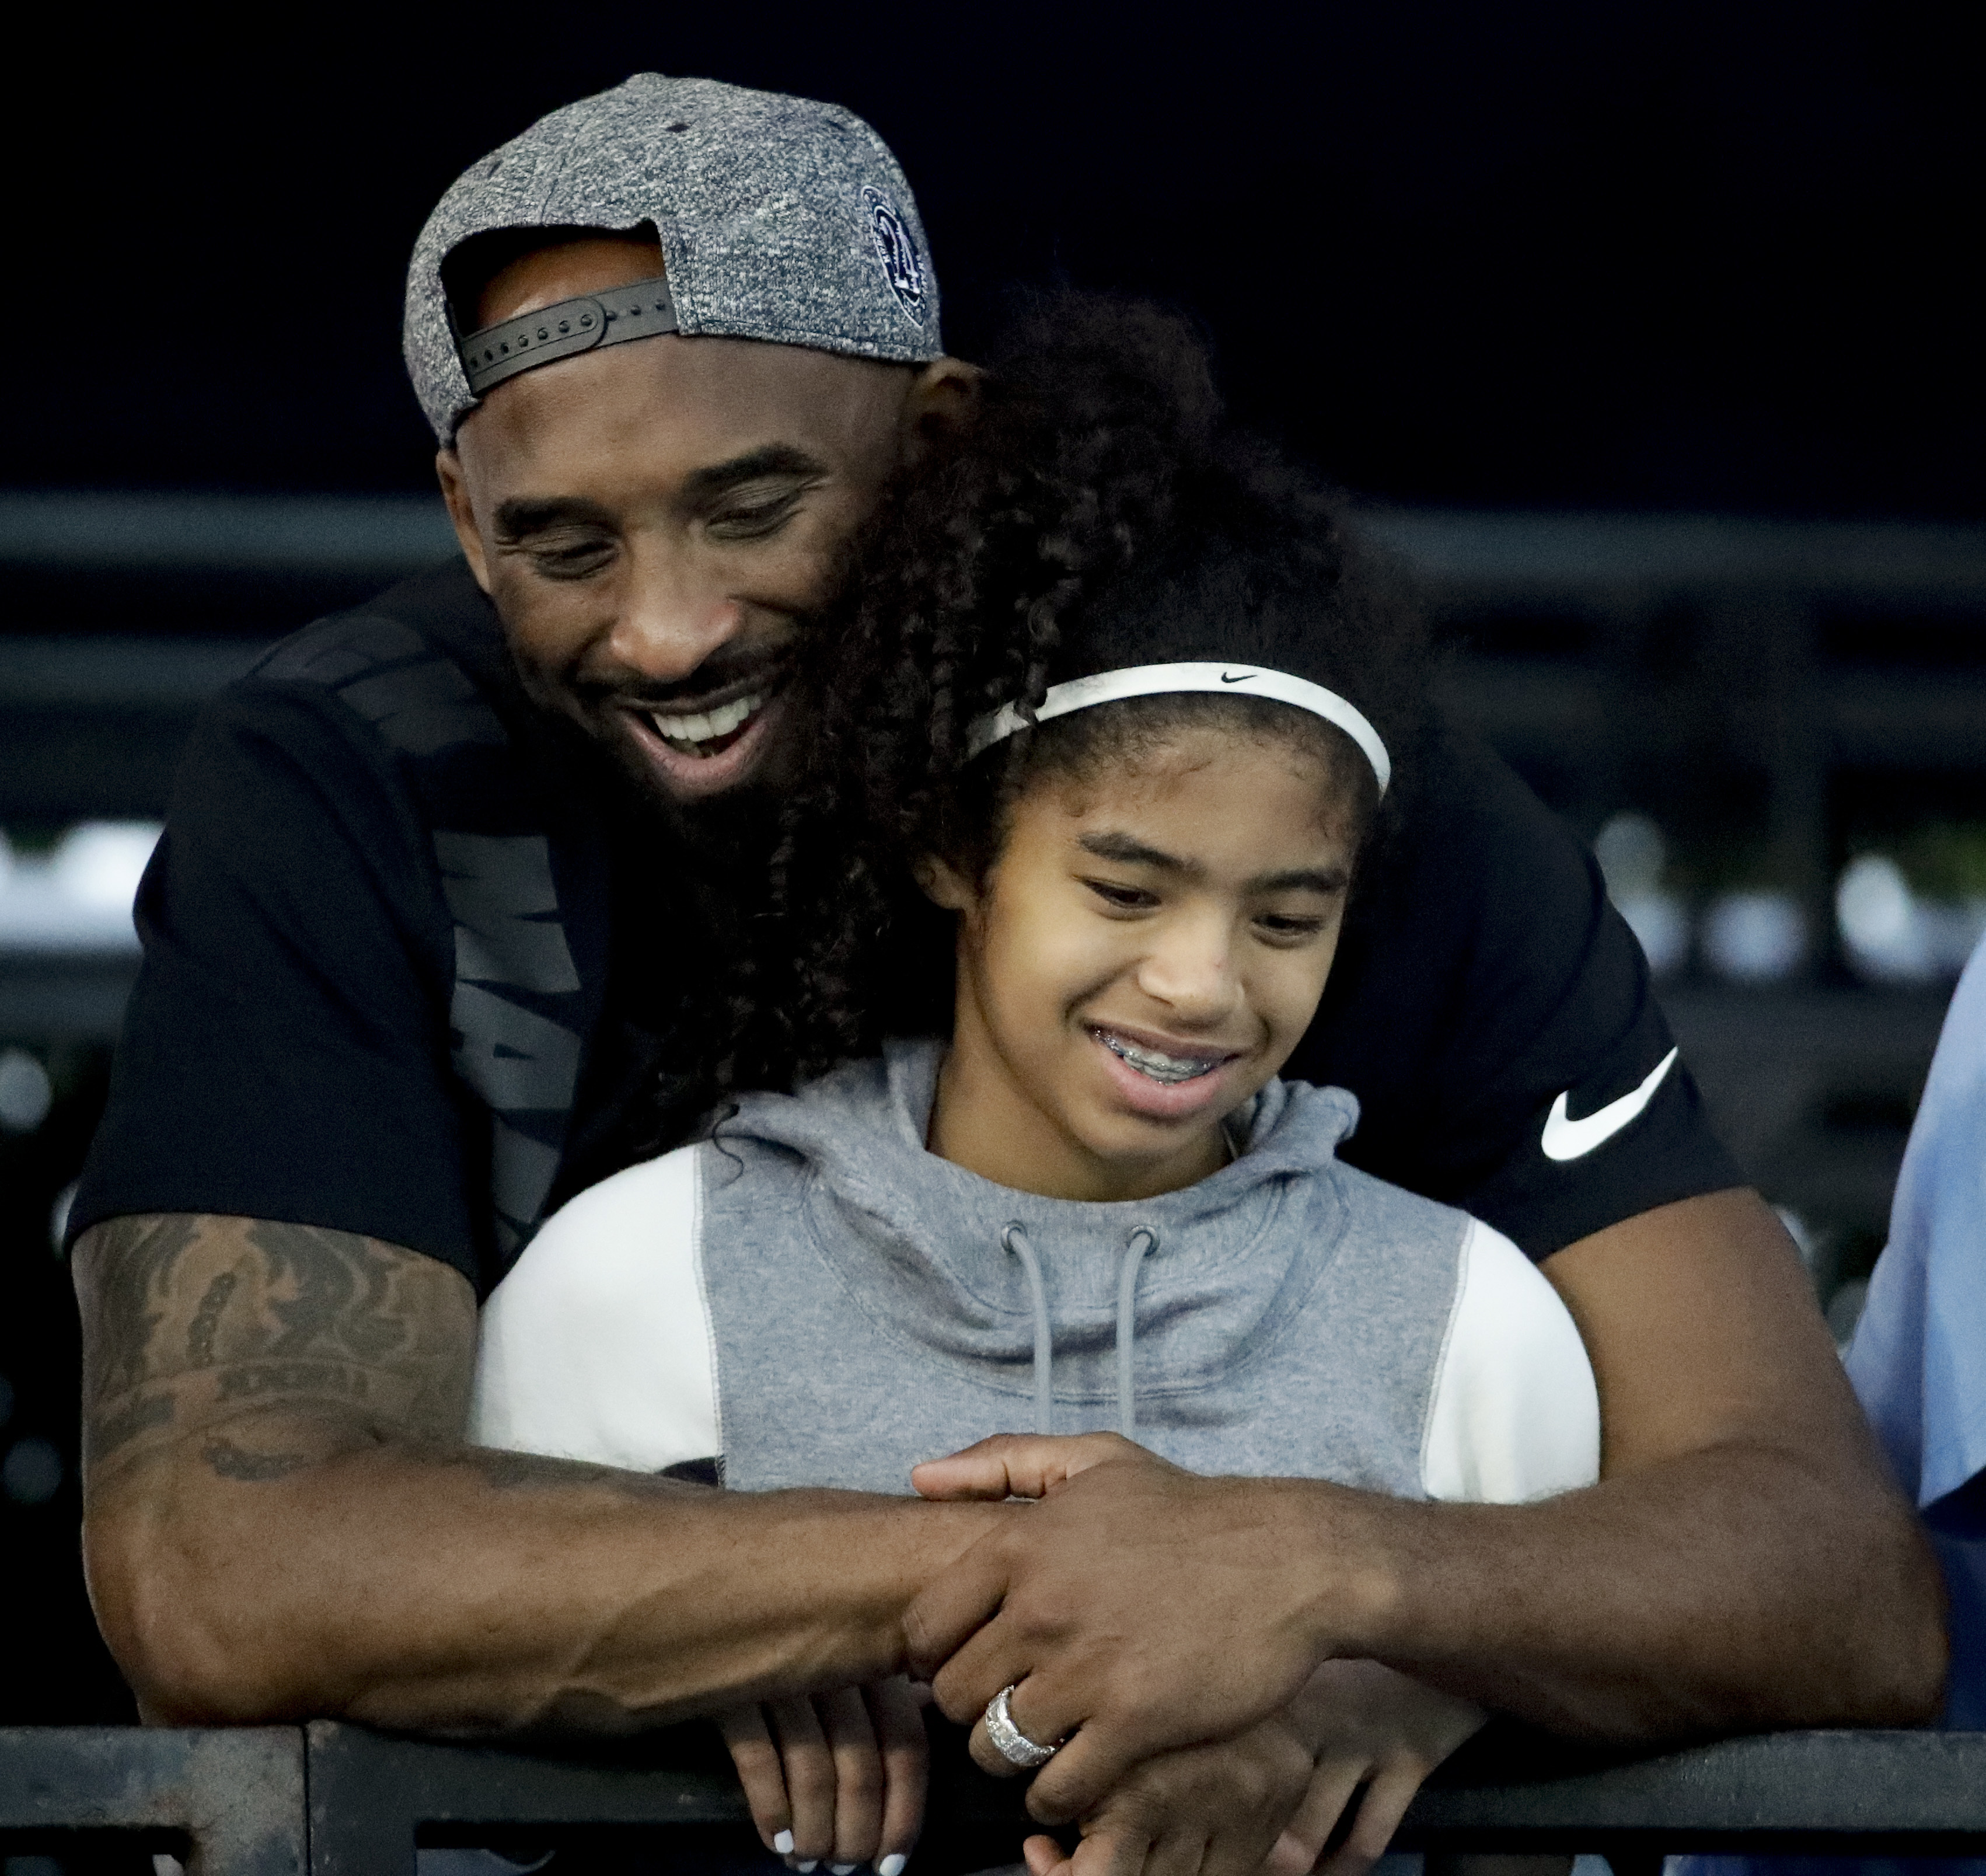 FILE - In this July 26, 2018, file photo former Los Angeles Laker Kobe Bryant and his daughter Gianna watch during the U.S. national championships swimming meet in Irvine, Calif.